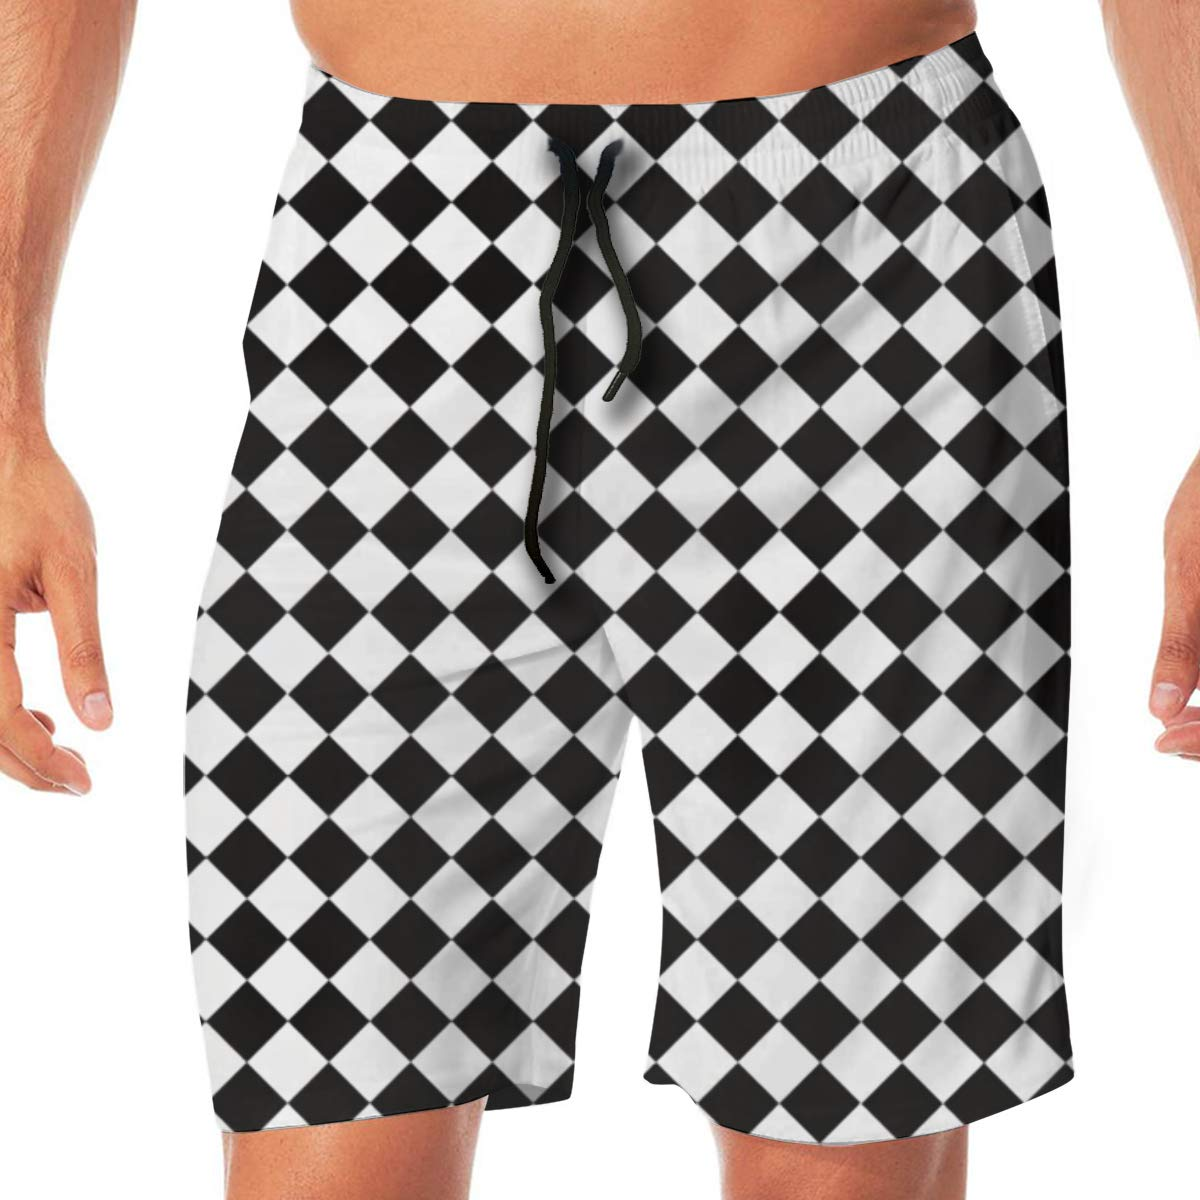 Woxianghe Mens Active Athletic Performance Shorts with Pockets Chess Checkerboard